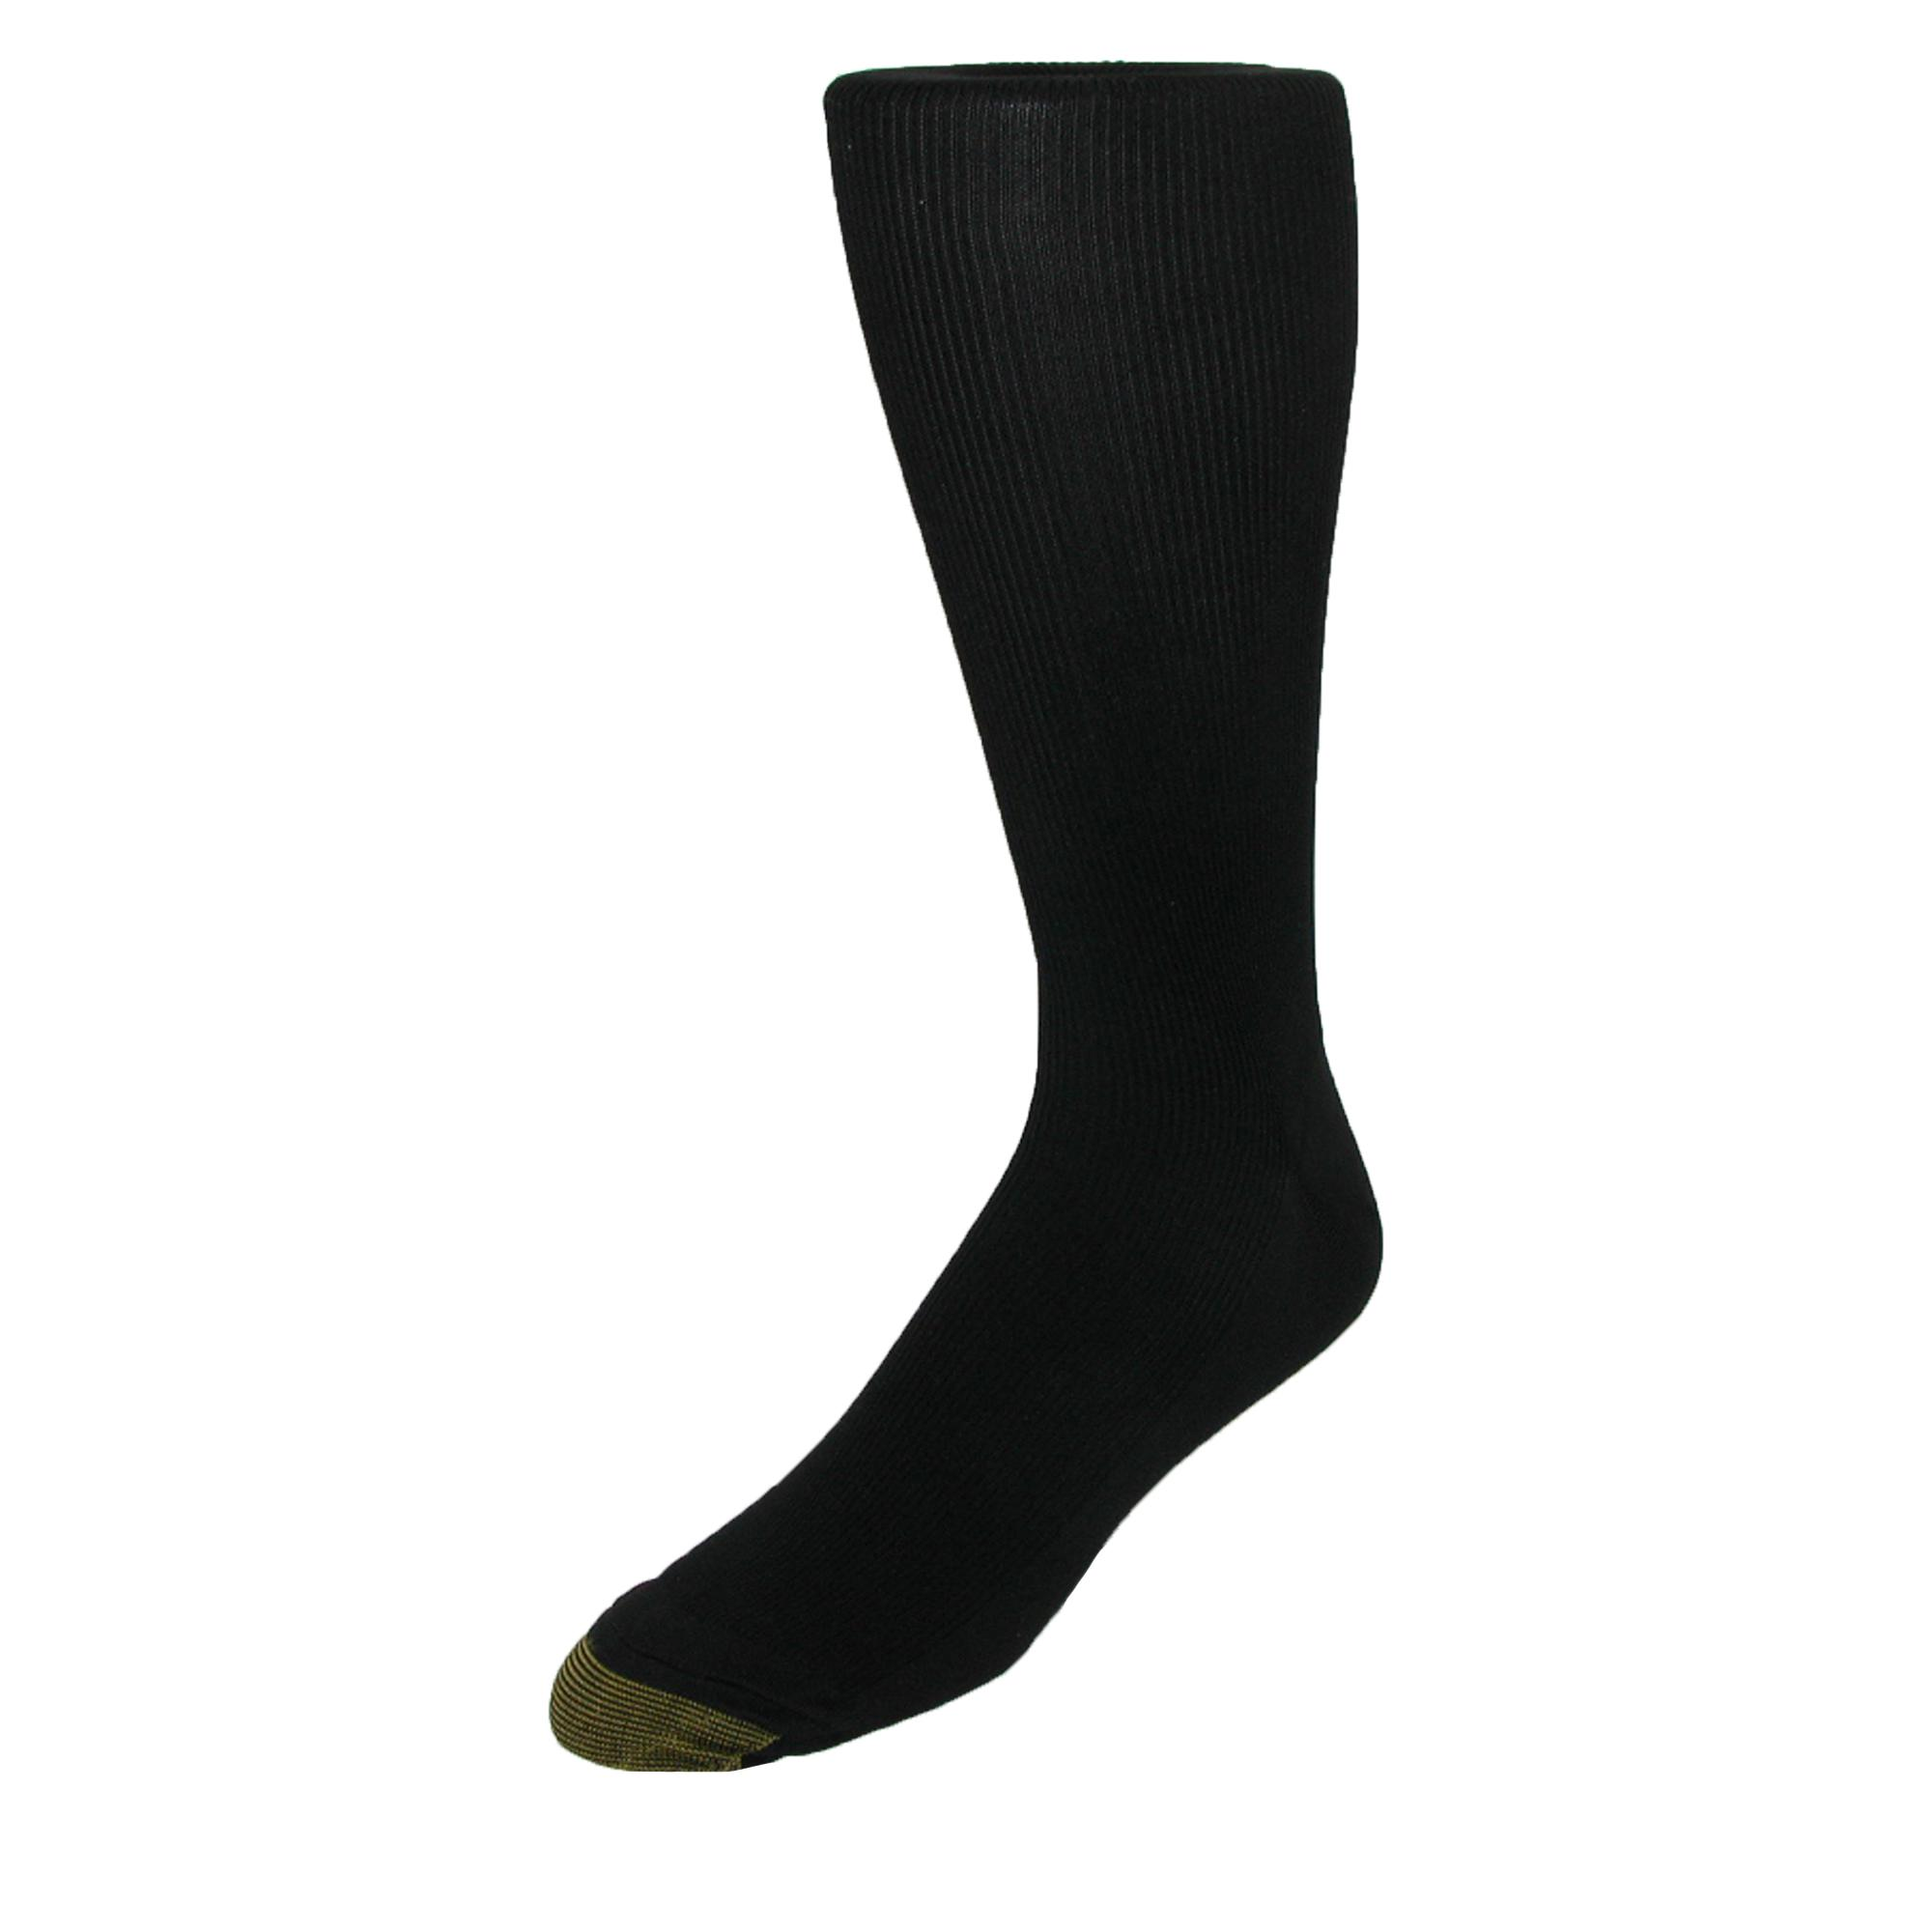 Gold_Toe_Mens_Metropolitan_Moisture_Control_Over_the_Calf_Socks_Pack